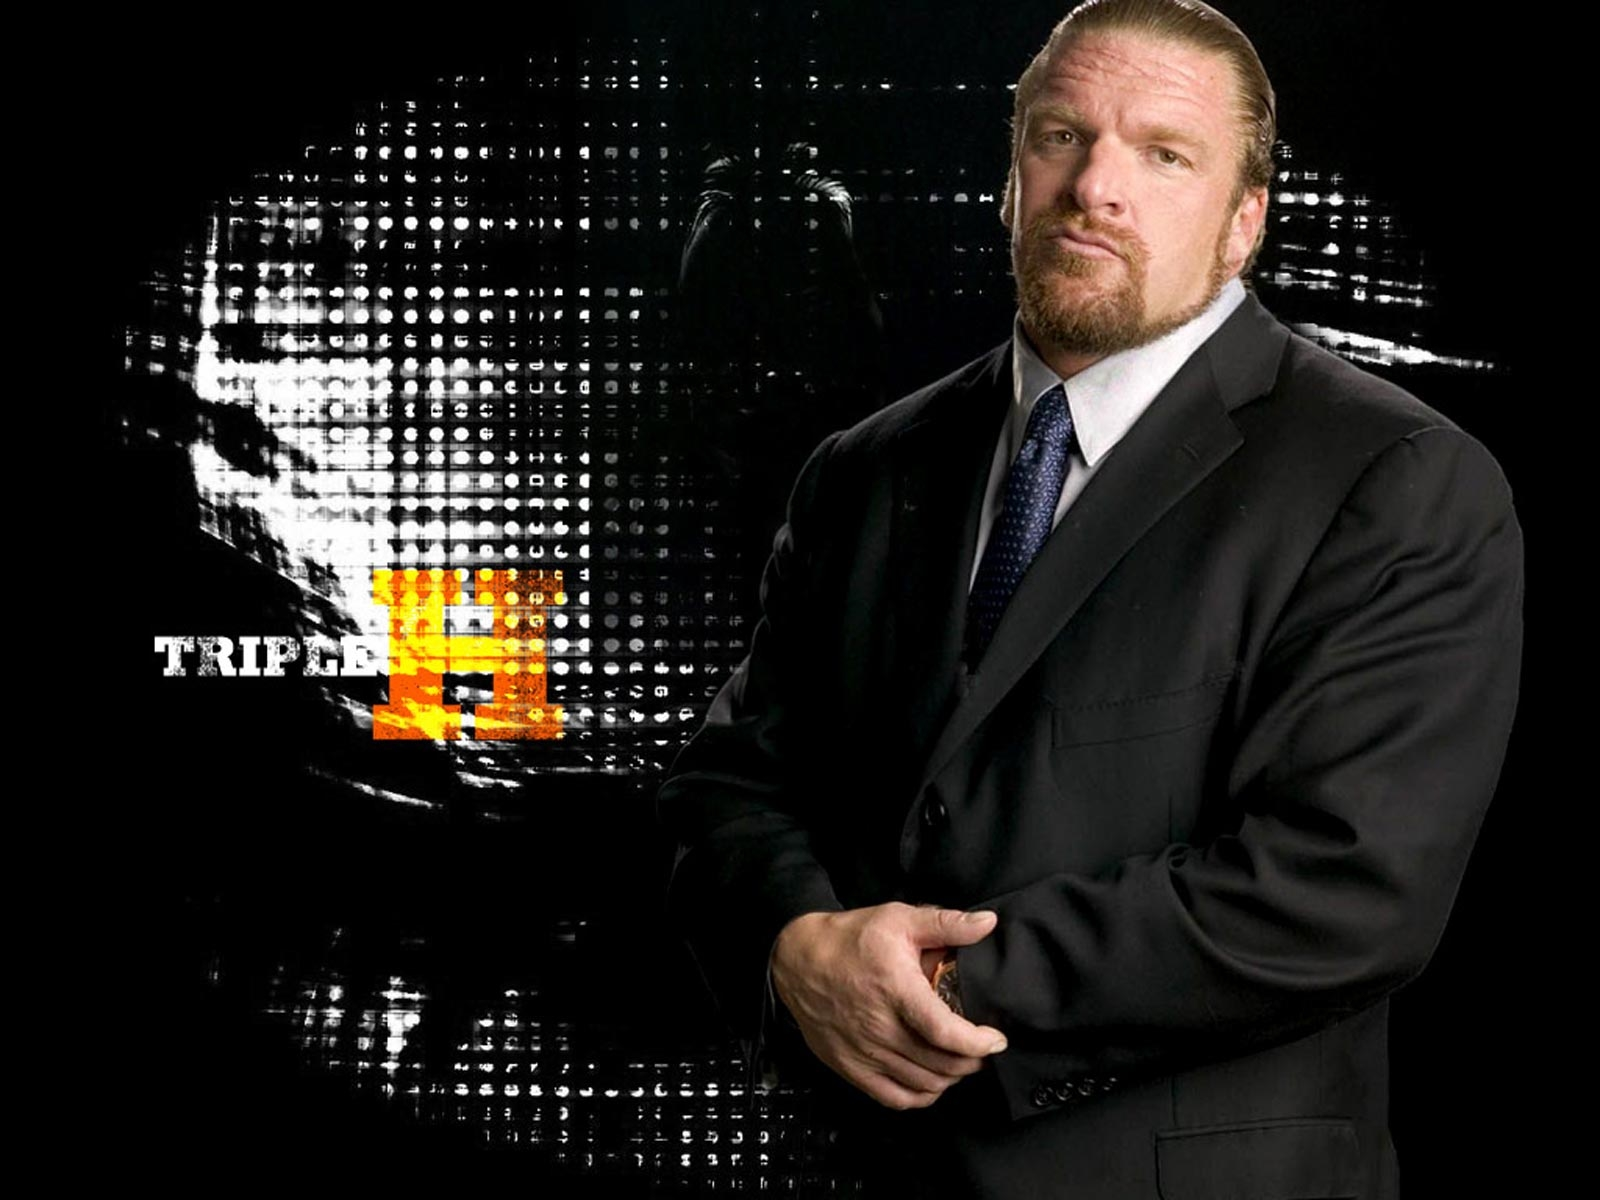 triple h wallpapers free download hd